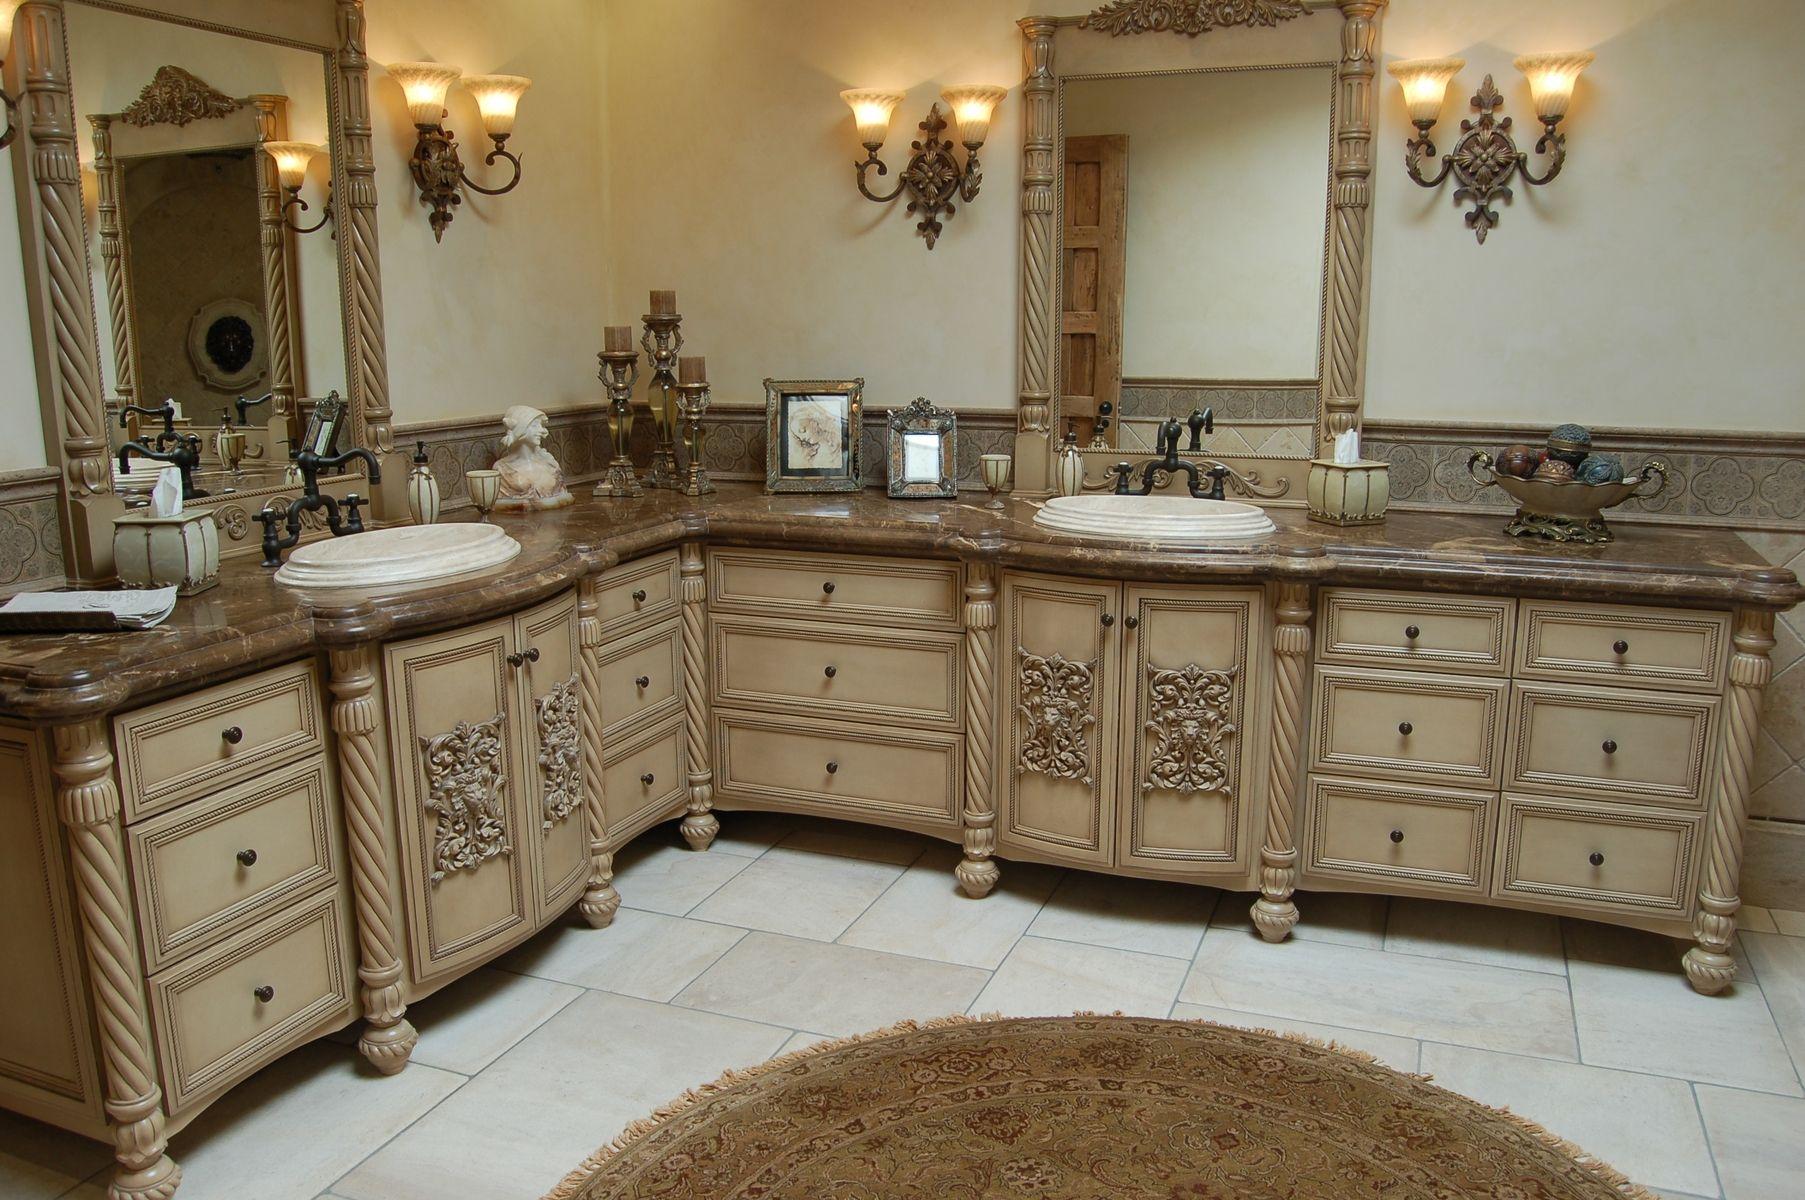 Brilliant Custom Bathroom Vanities Portland Oregon Inspiration - Bathroom vanities portland oregon for bathroom decor ideas